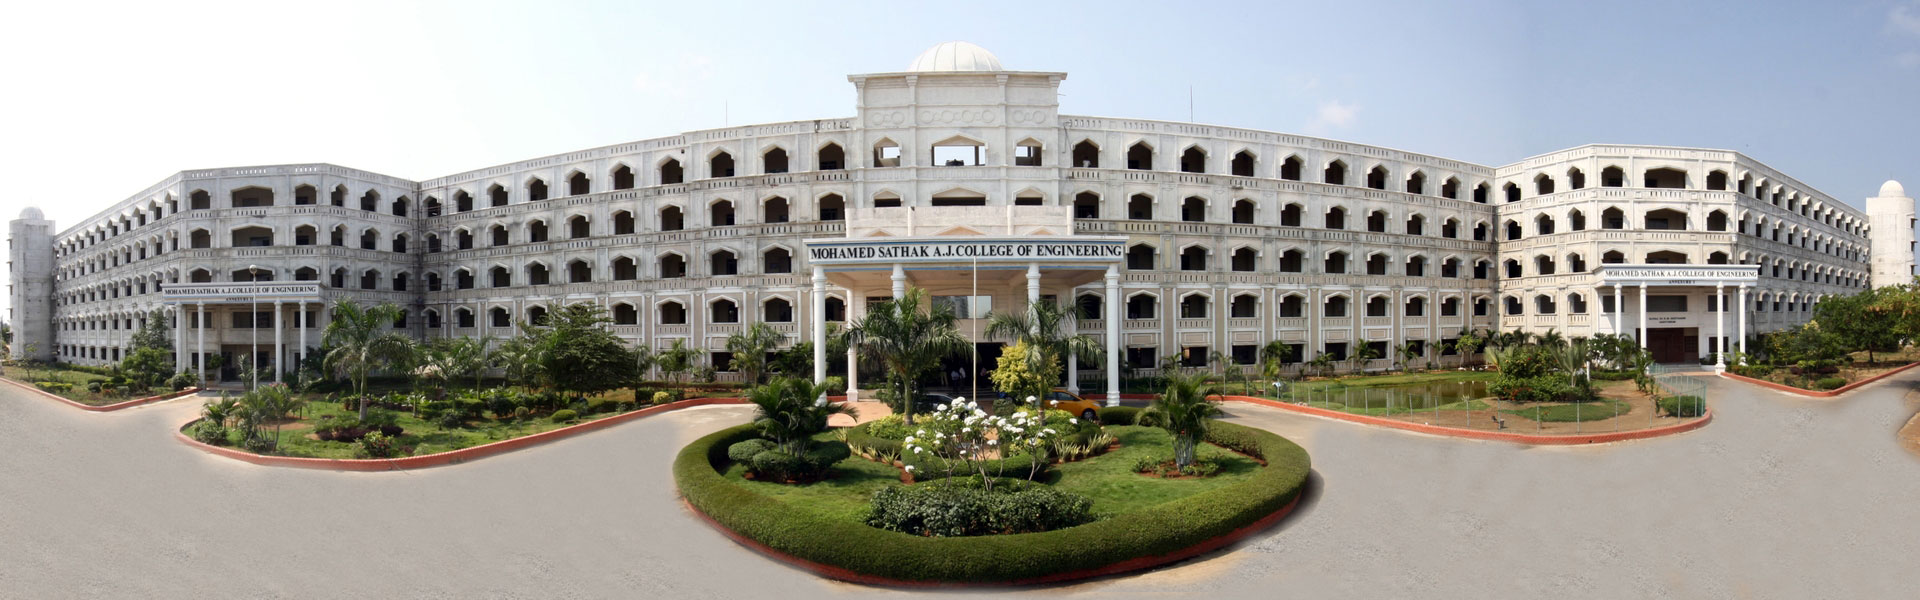 Mohamed Sathak Engineering College